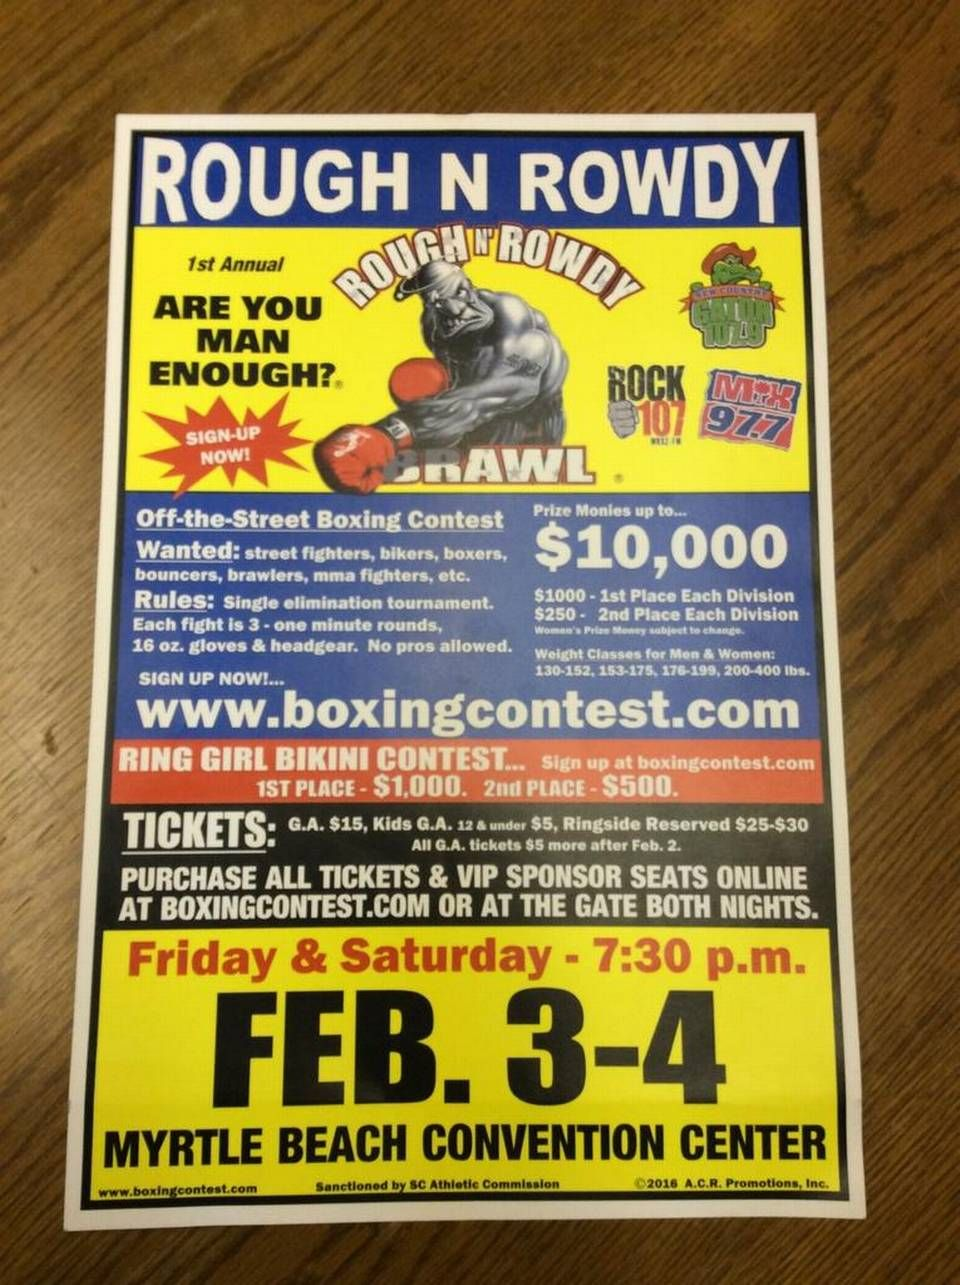 A flier for this weekend's Rough N Rowdy Brawl at the